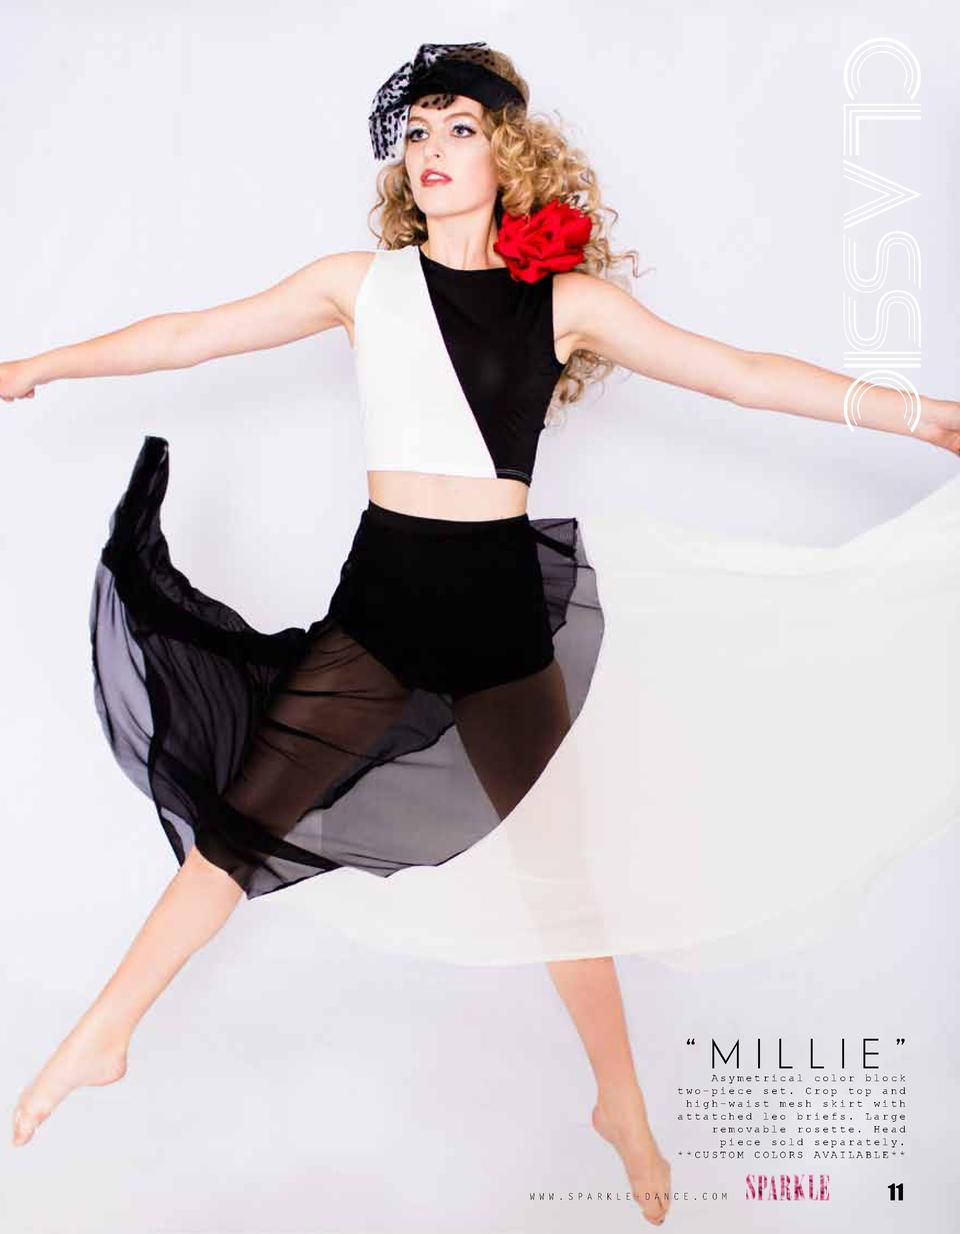 CLASSIC    MILLIE     Asymetrical color block two-piece set. Crop top and high-waist mesh skirt with attatched leo briefs....